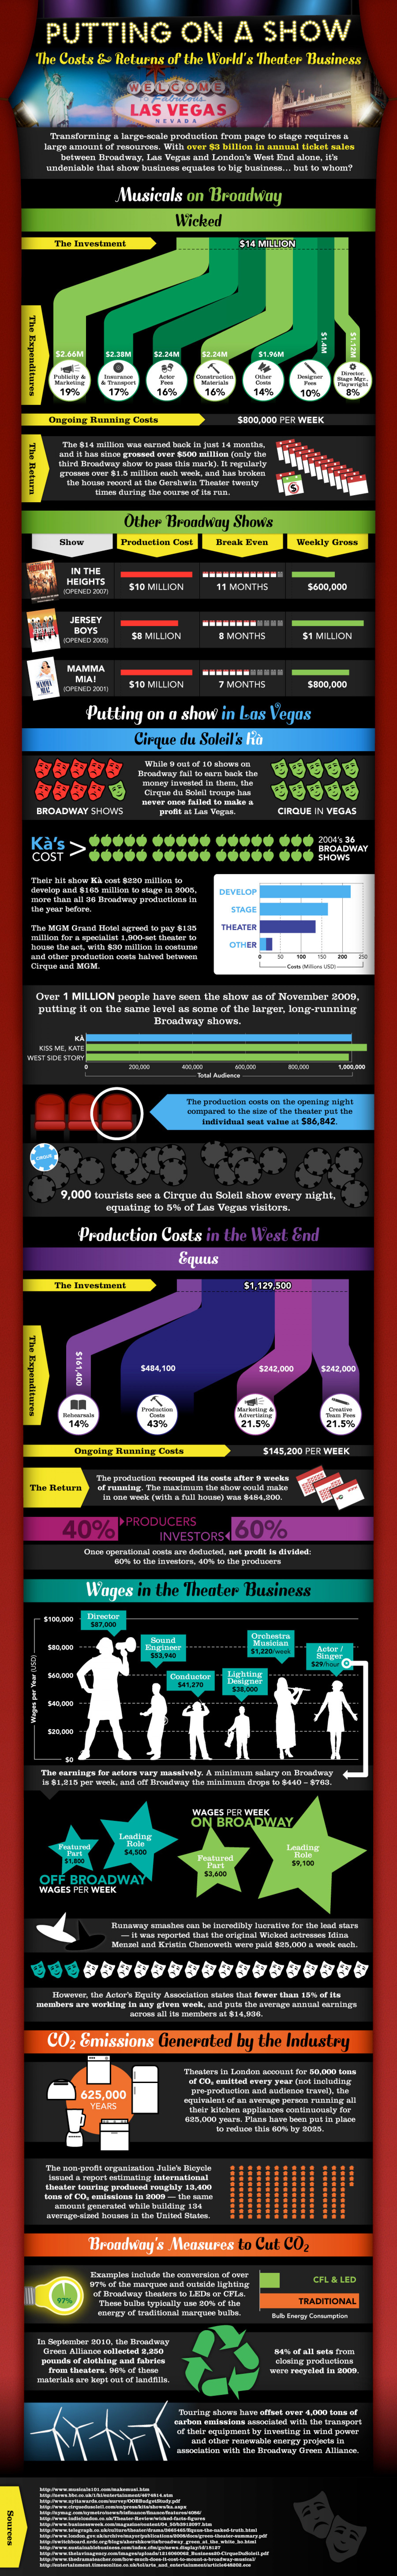 The Costs and Returns of the World's Theater Business Infographic